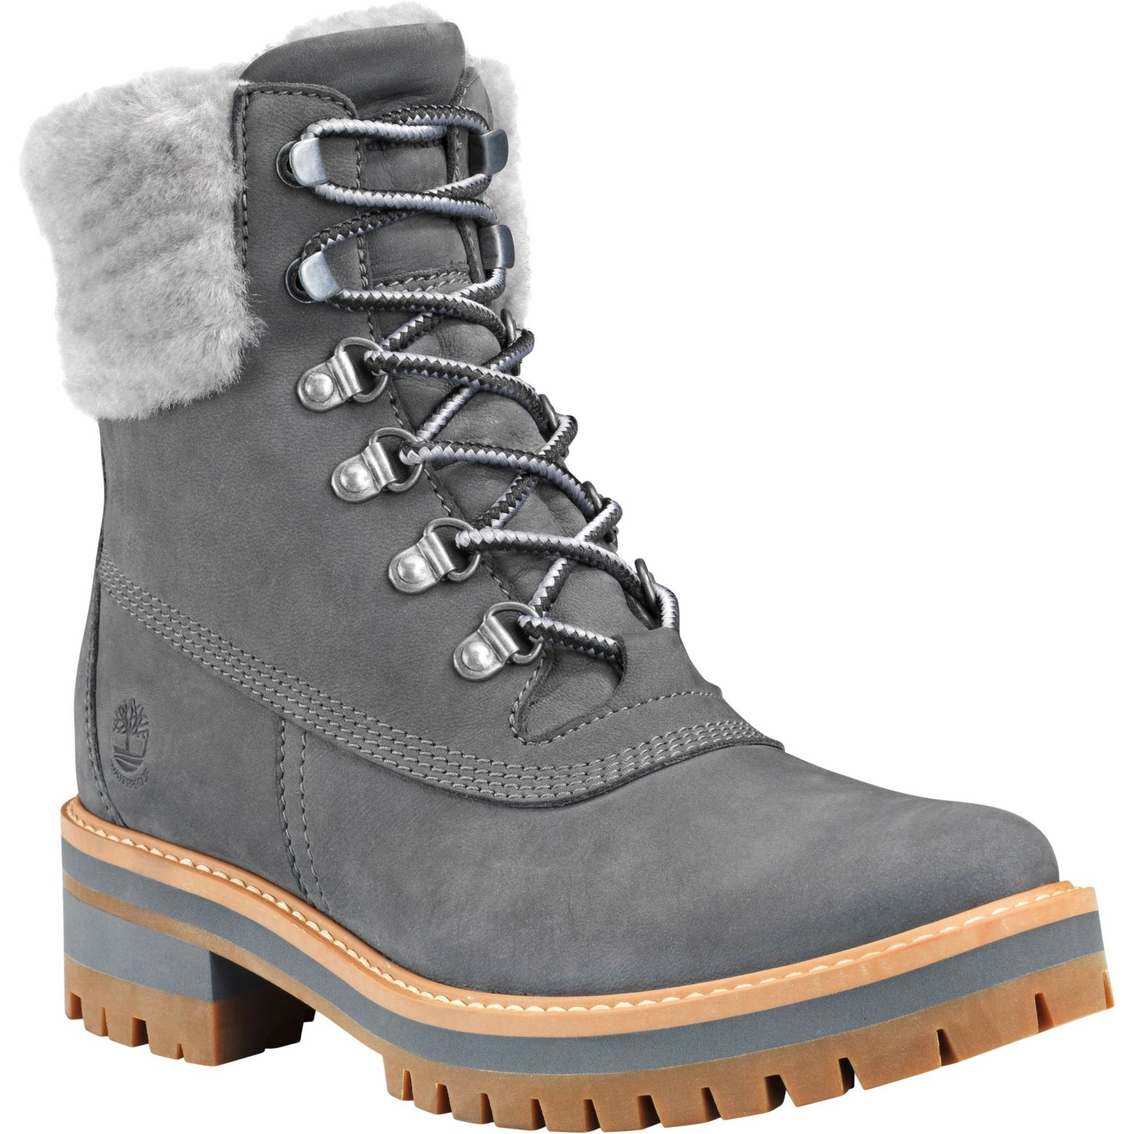 Timberland Women's Courmayeur Valley Shearling 6 In. Boots